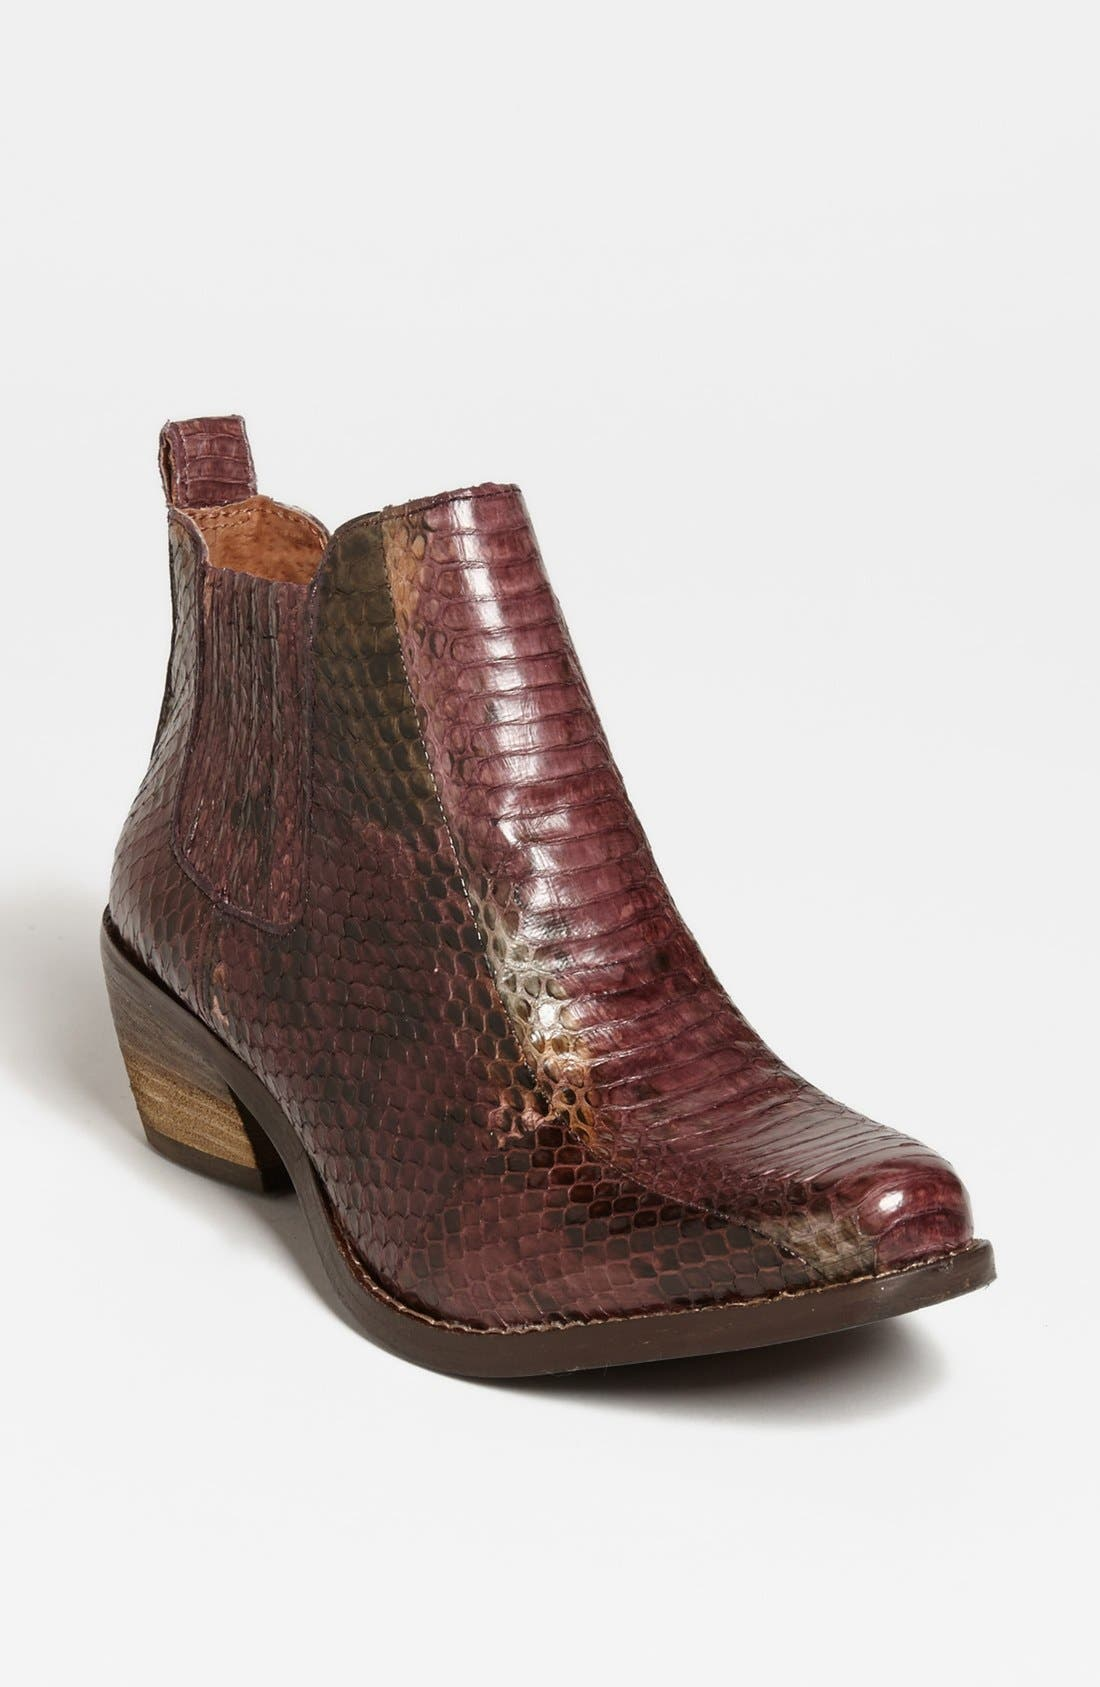 Alternate Image 1 Selected - Vince Camuto 'Corral' Boot